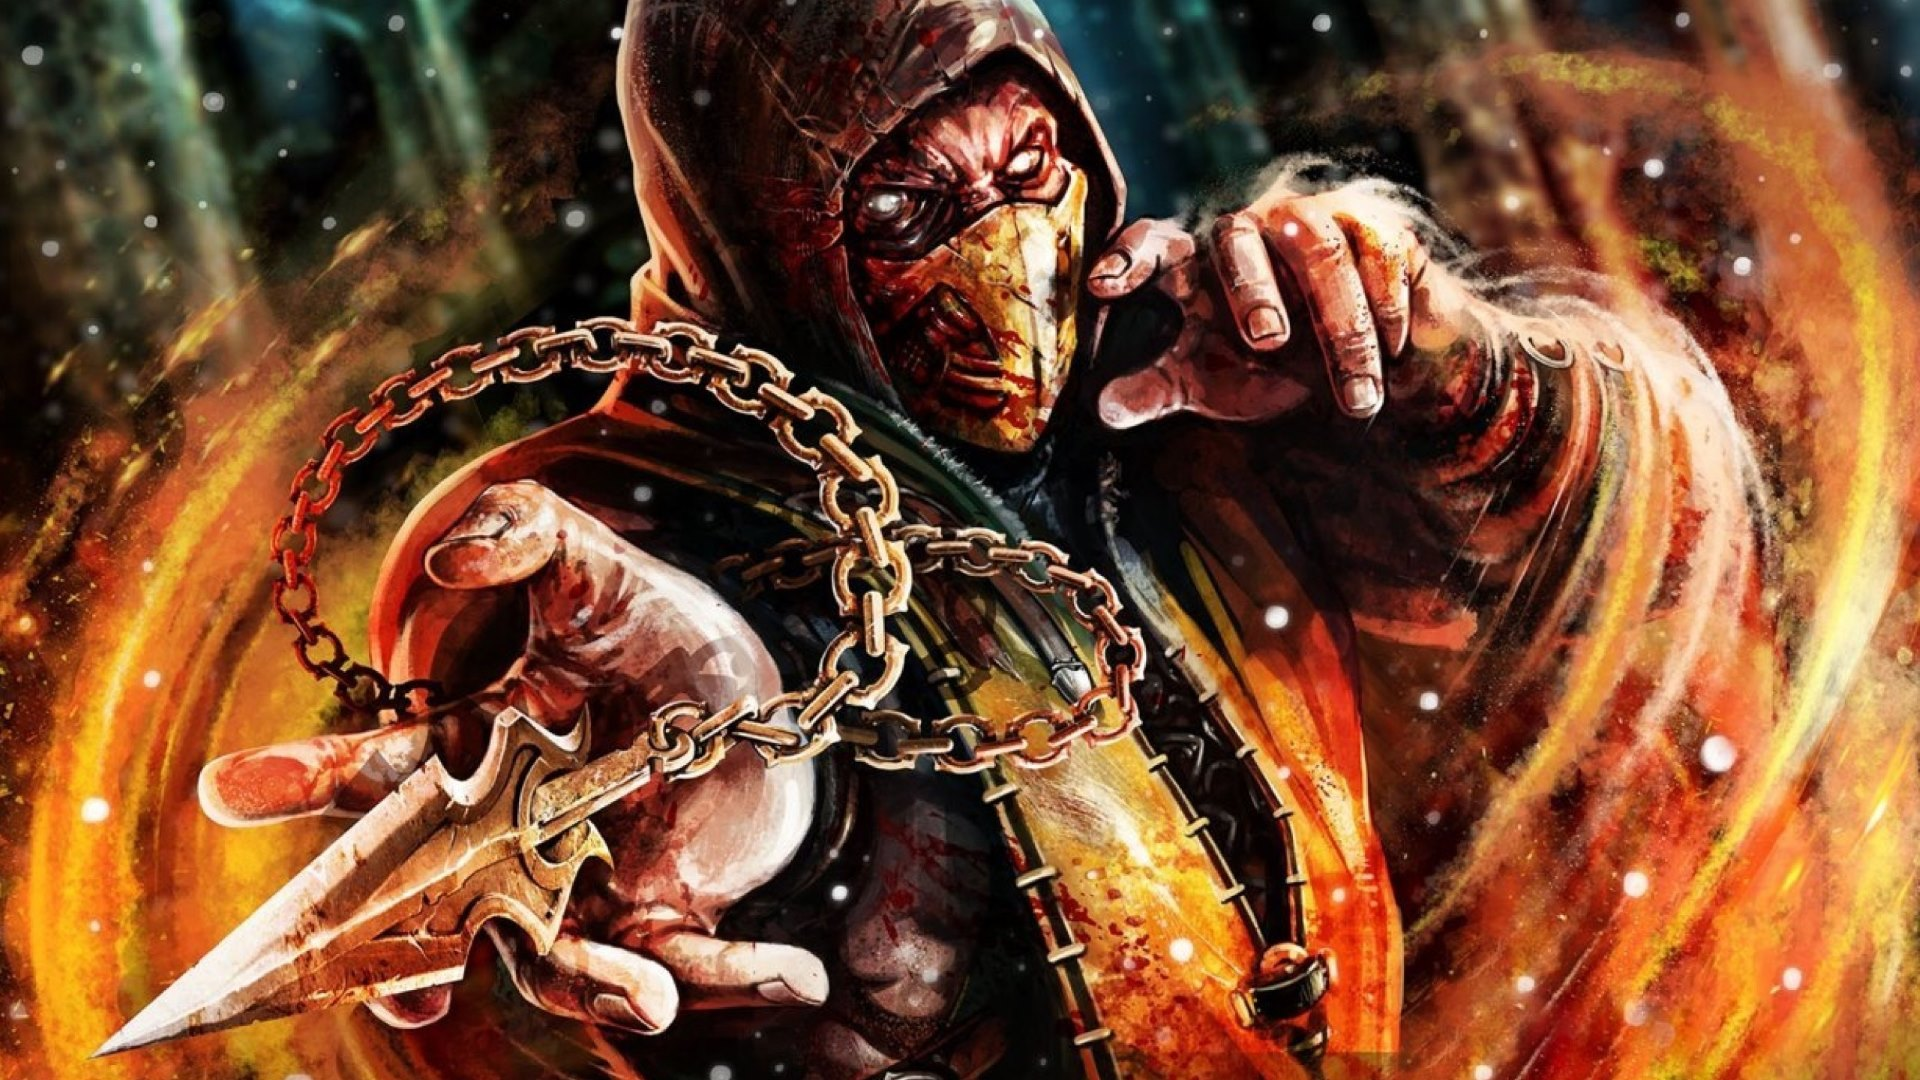 scorpion mortal kombat x 2015 game fire wallpaper trecobox